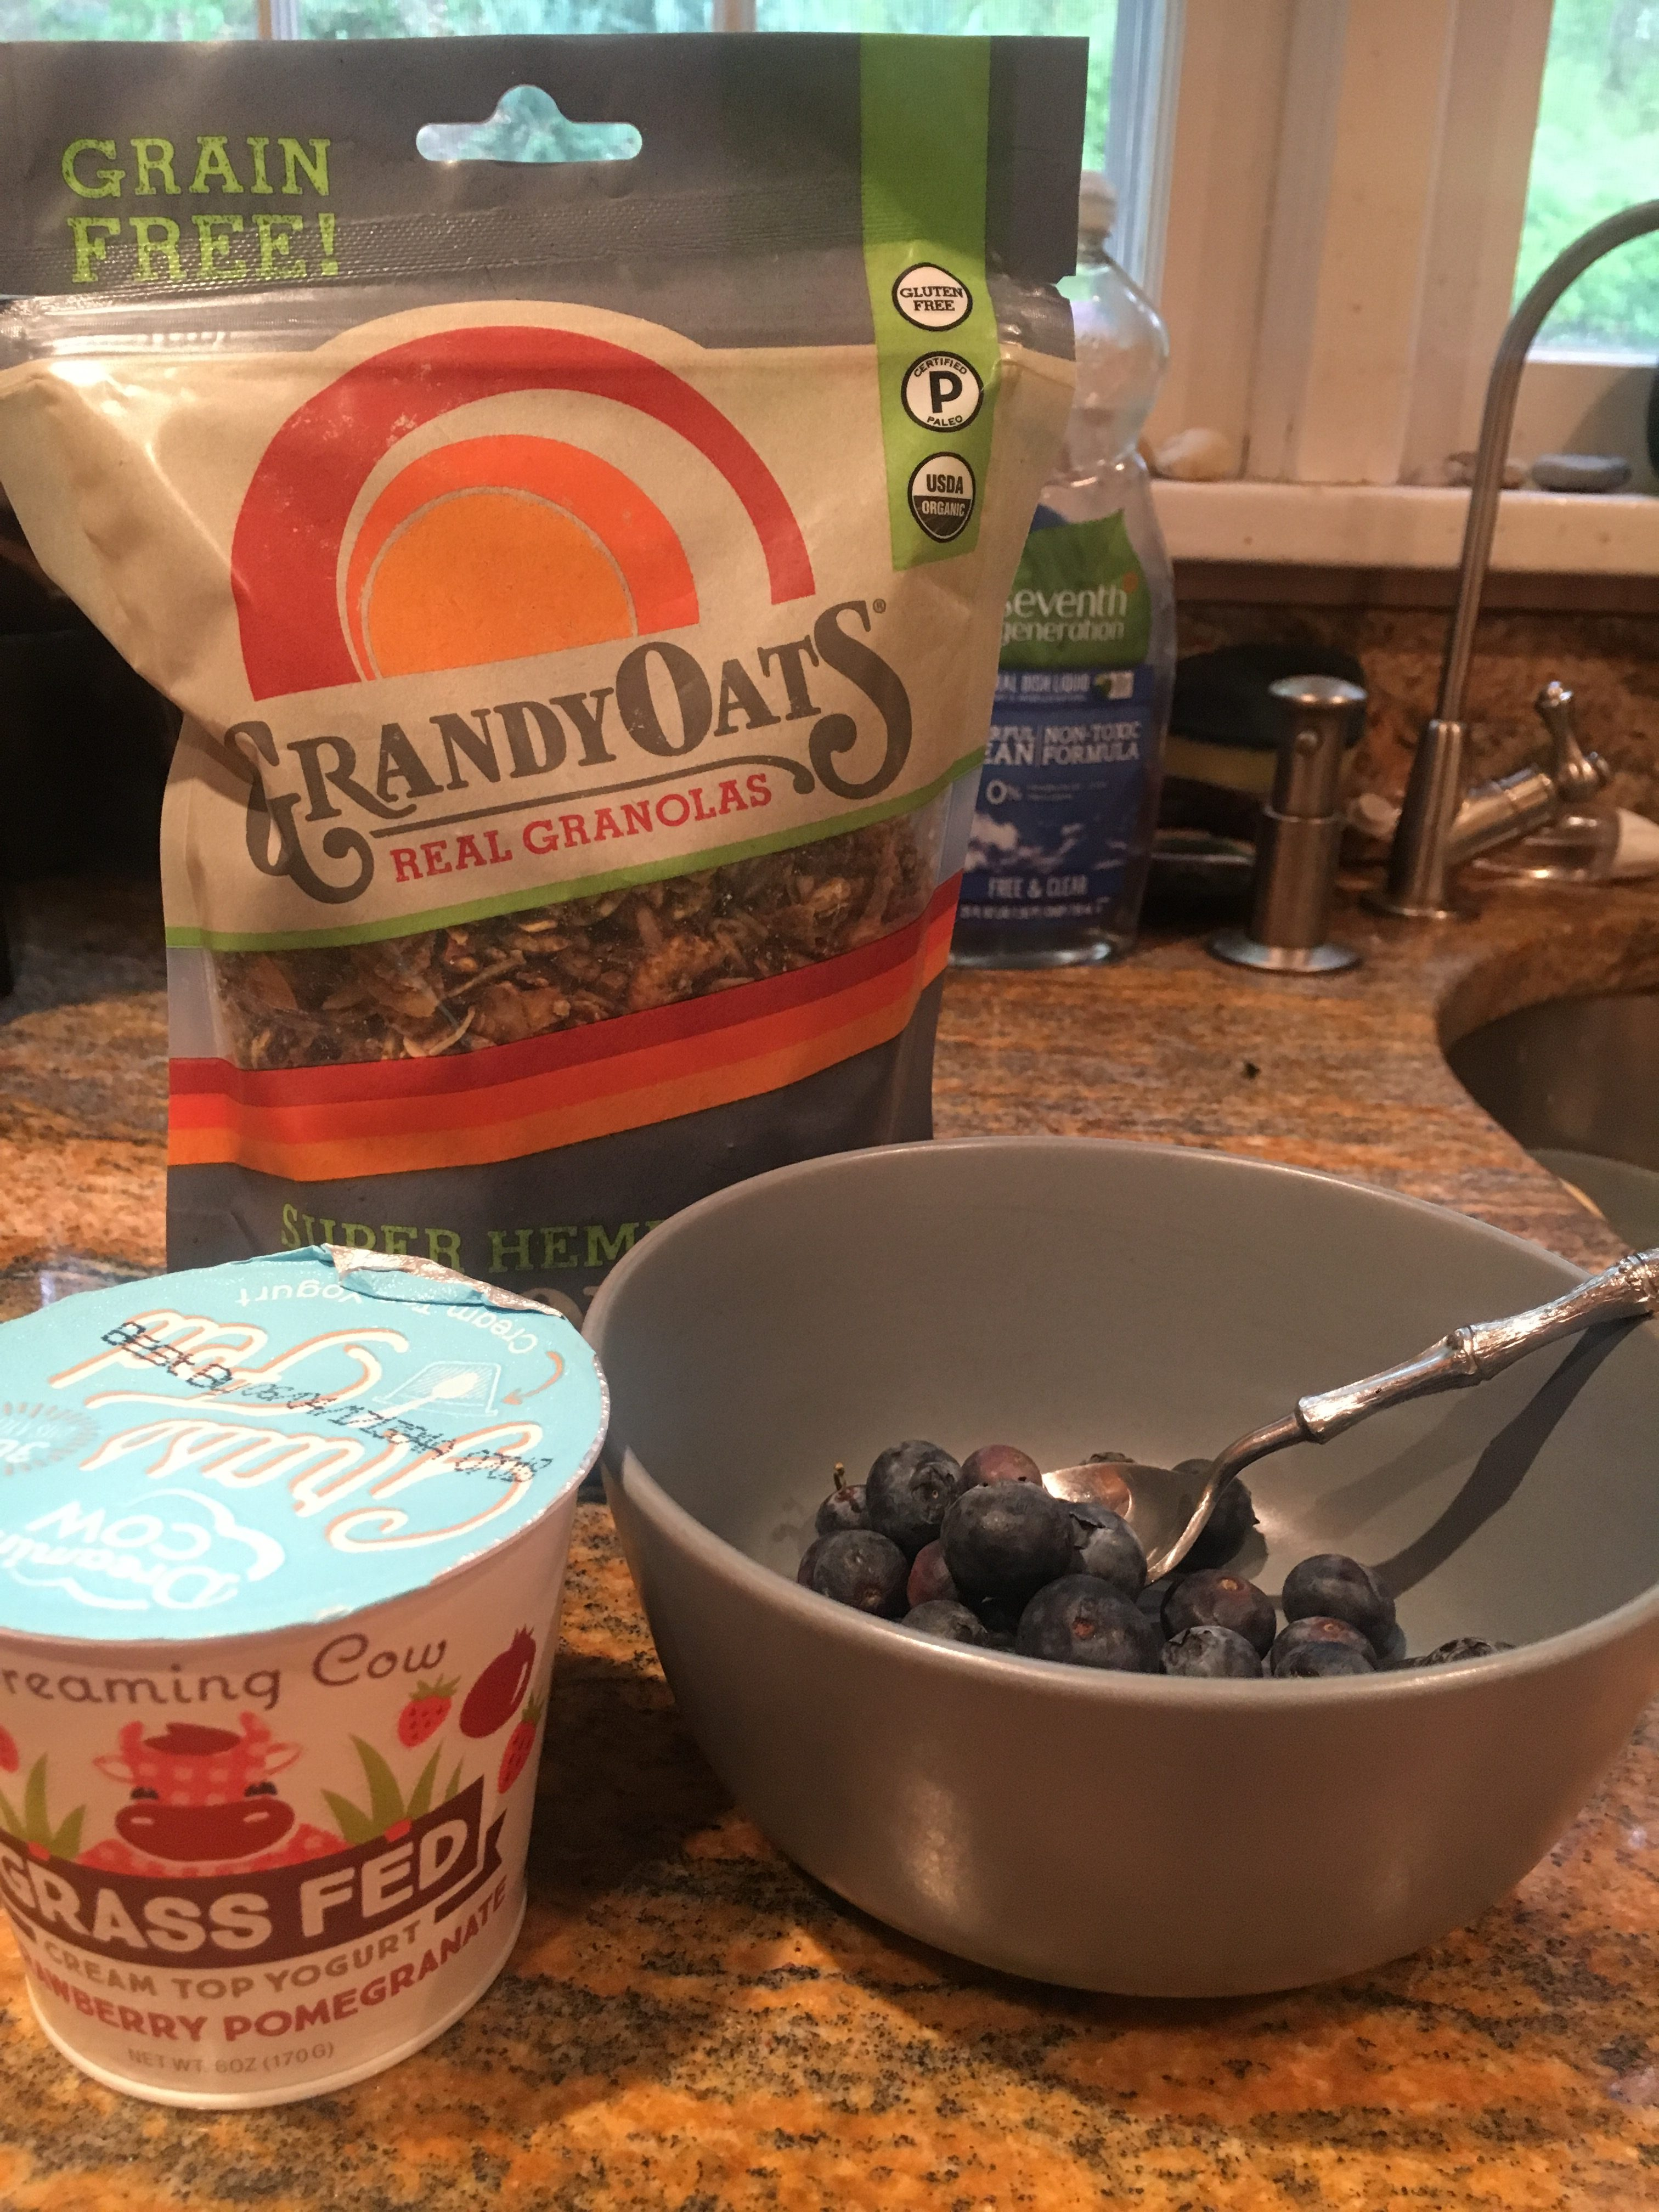 Healthy Start with Grain-Free GrandyOats